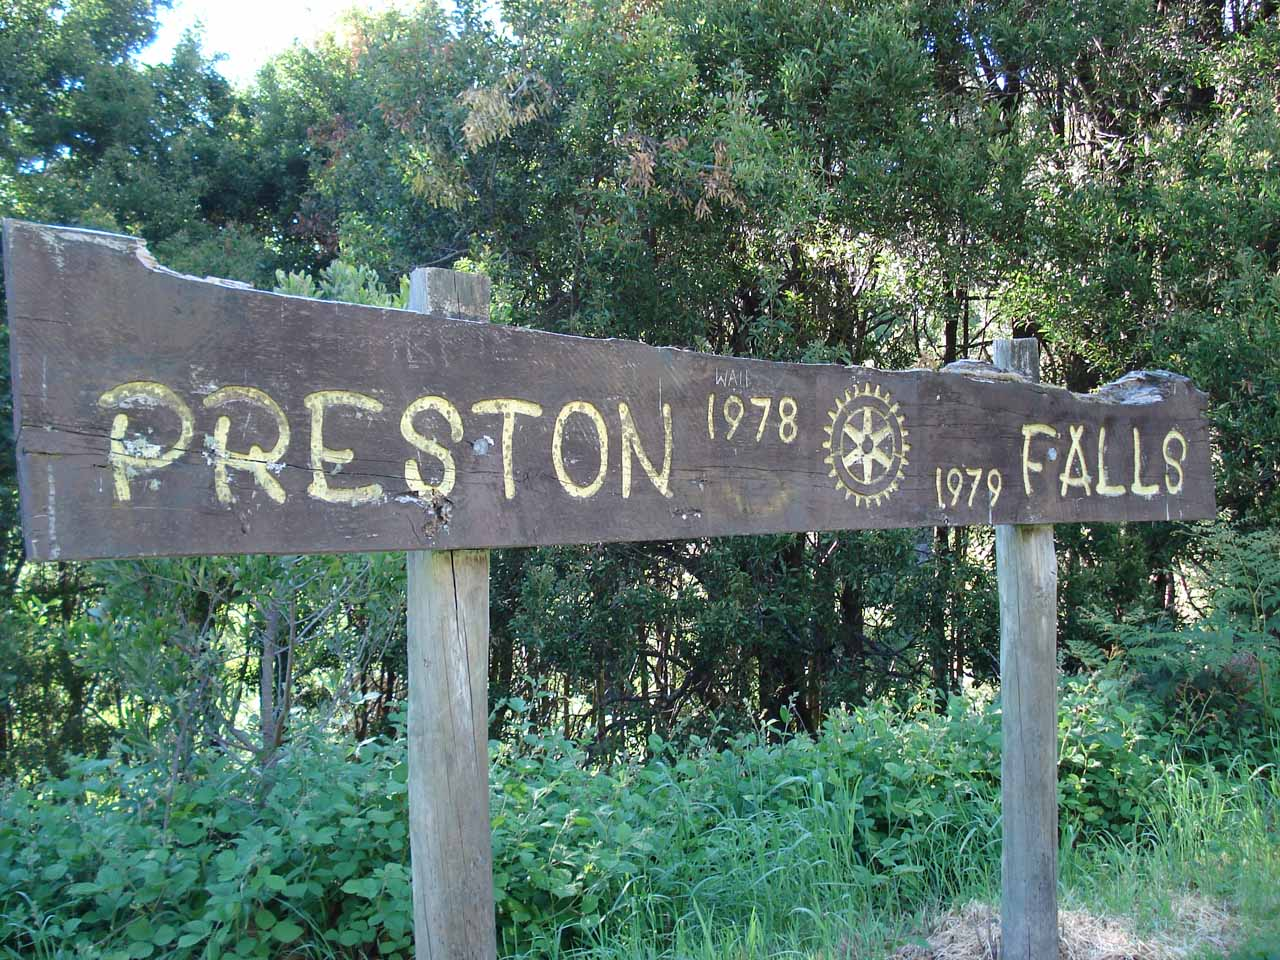 A closer examination of the sign that told us this was Preston Falls